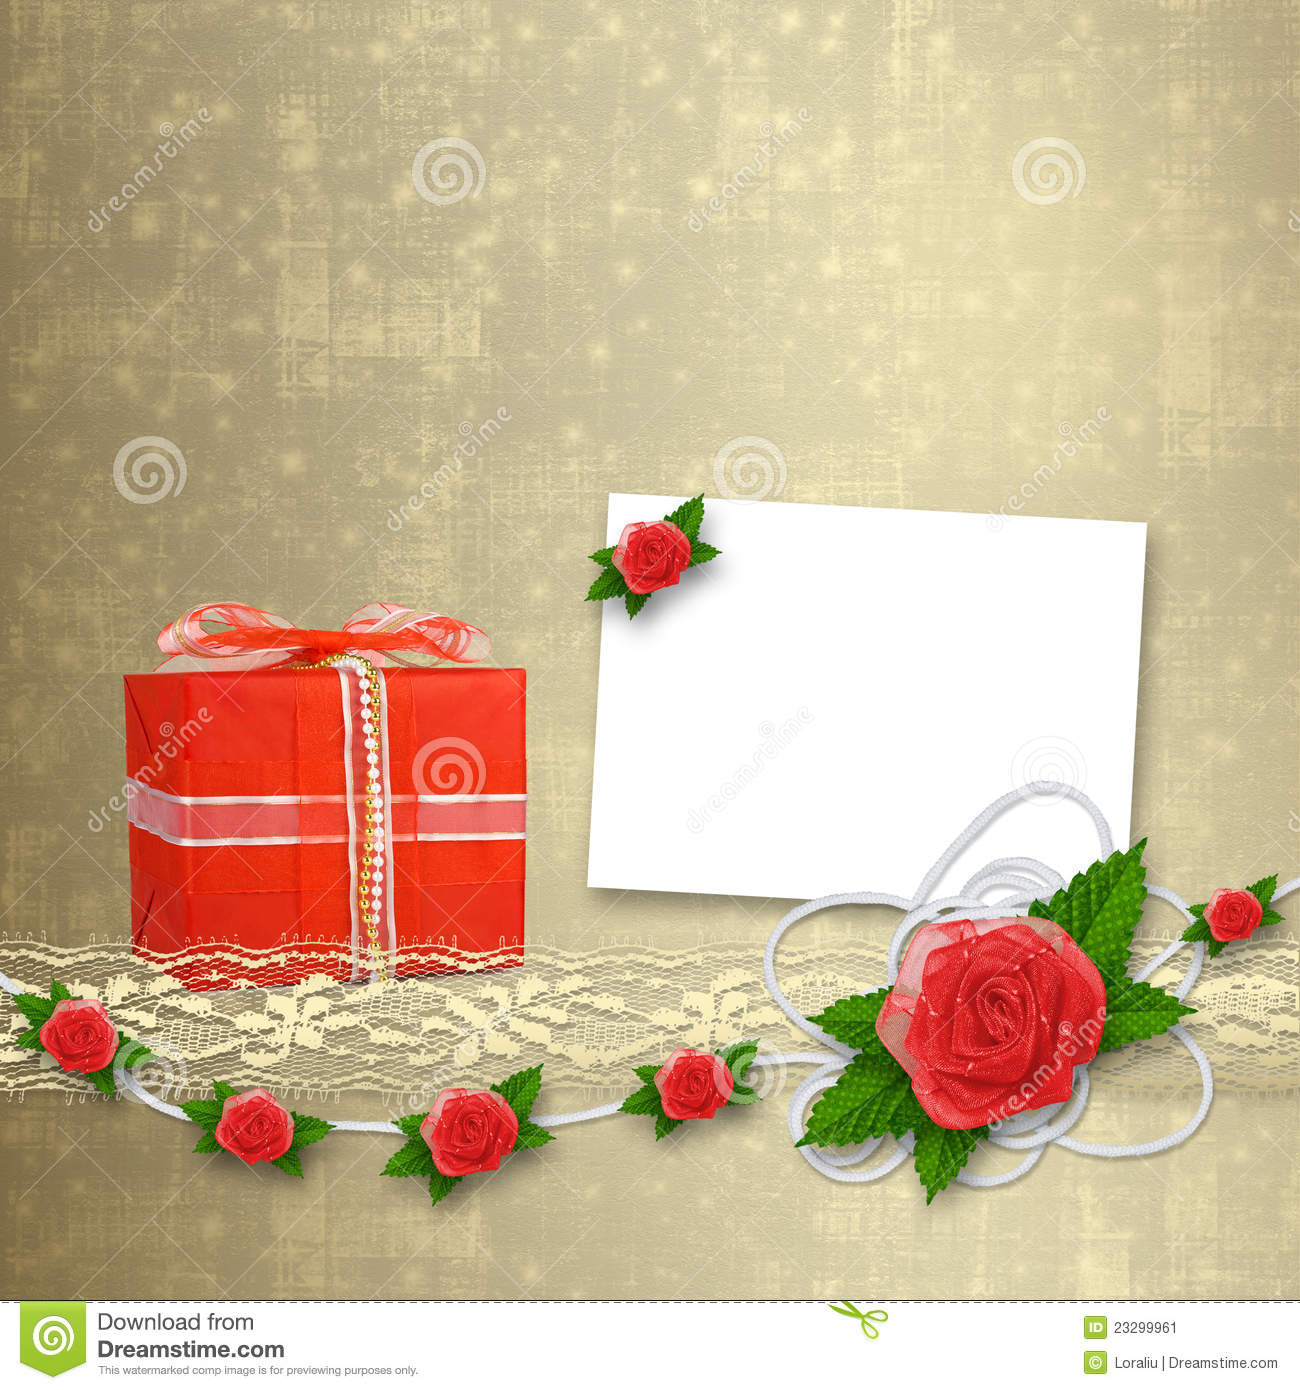 Card for invitation with buttonhole and lace